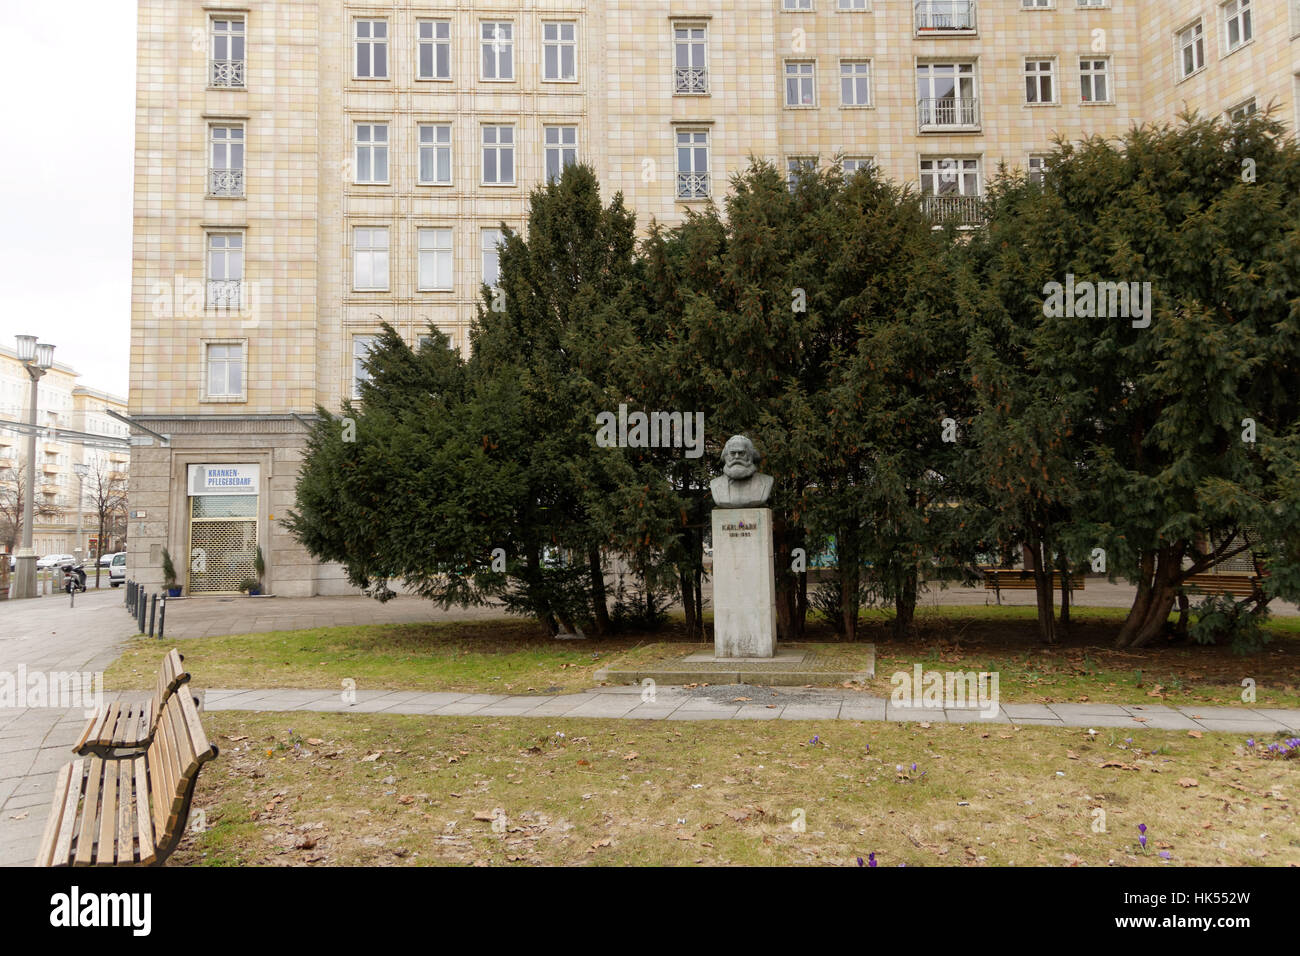 Stock photo blue house building city town berlin germany german federal republic